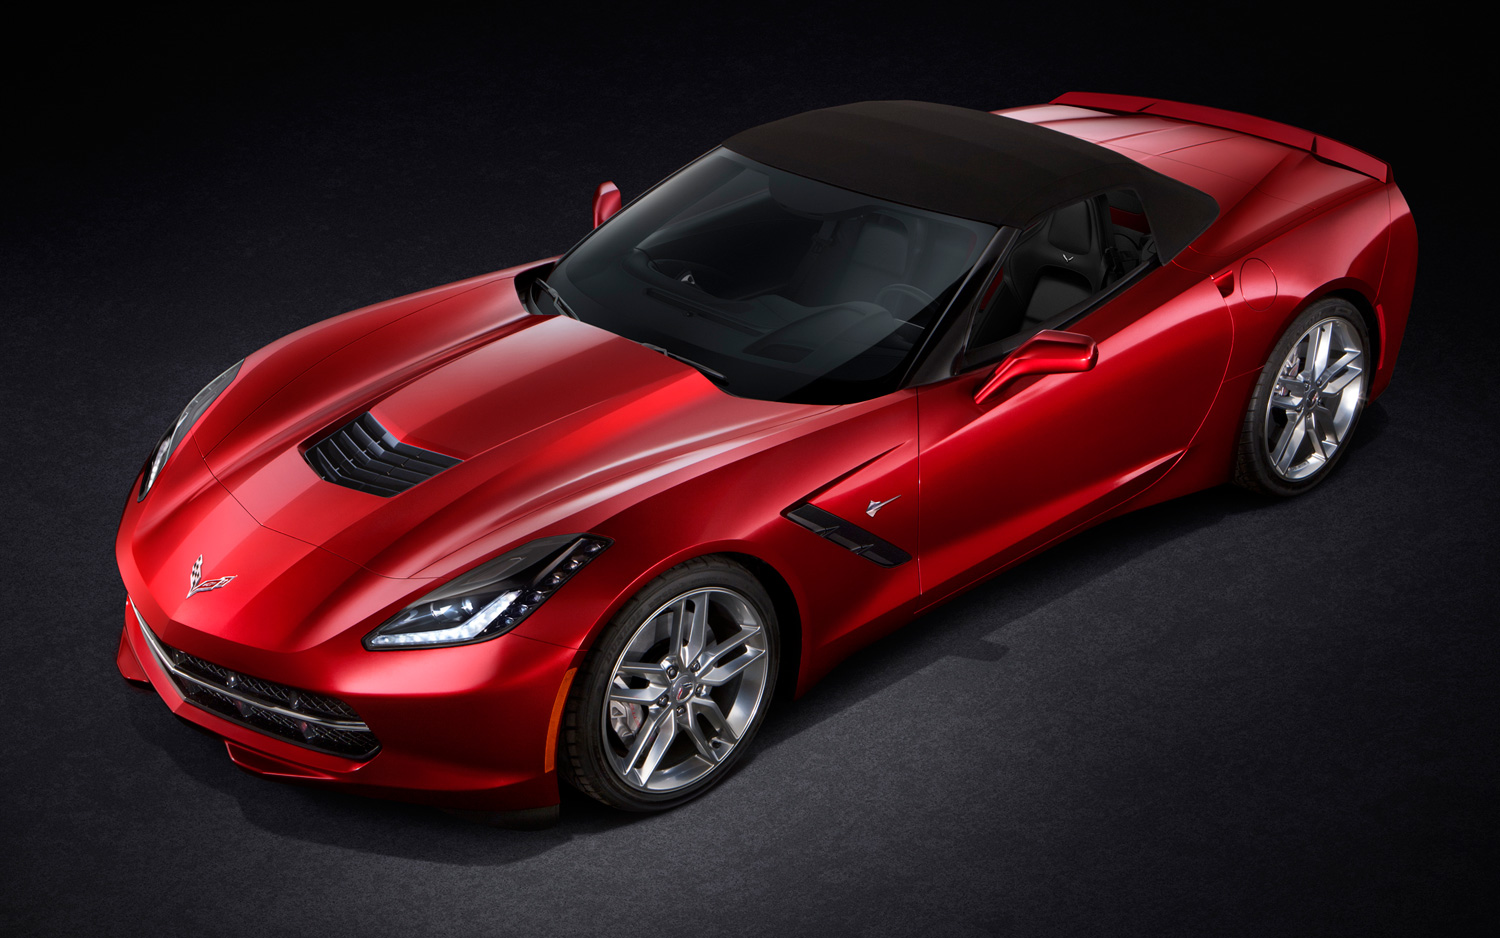 CHEVROLET CORVETTE red